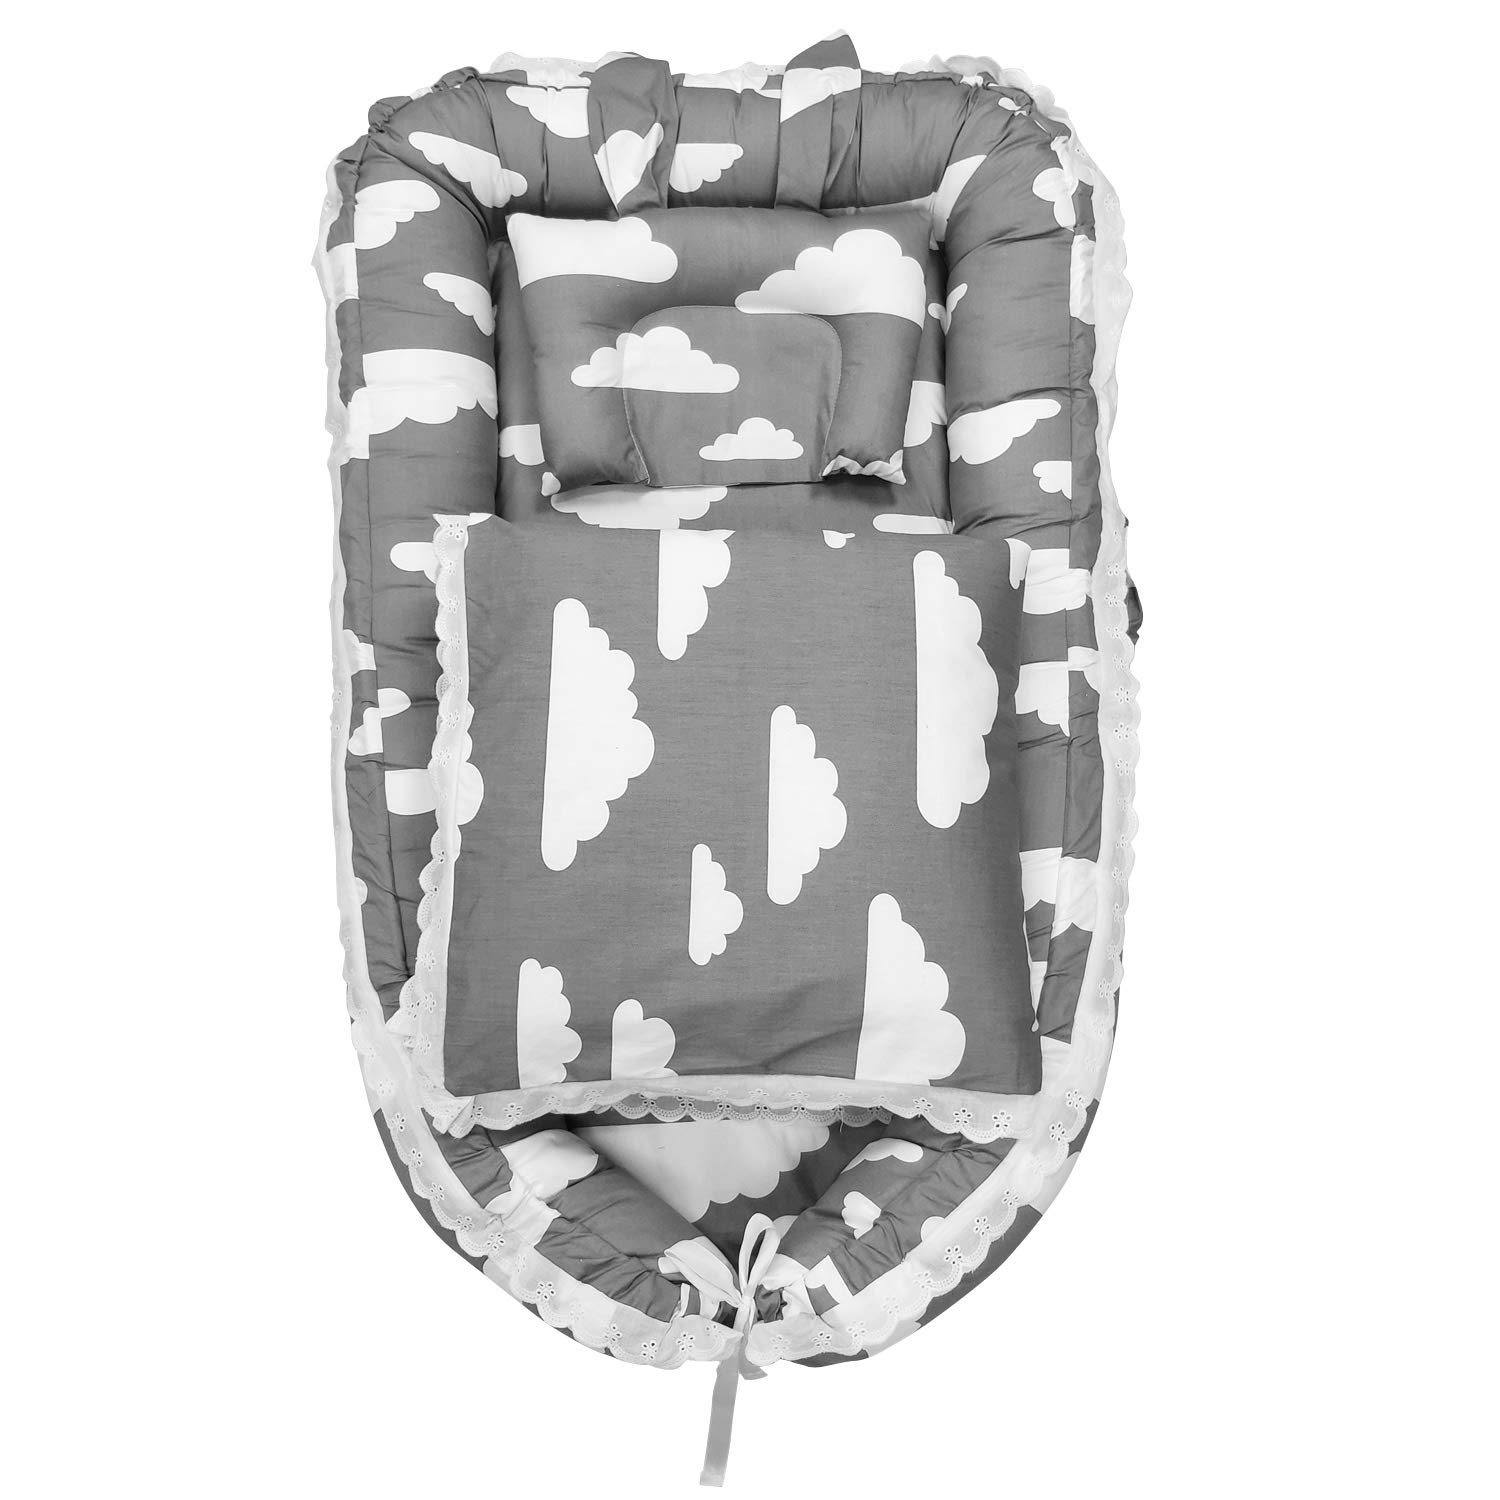 Abreeze Baby Travel Co-Sleeping Baby Crib Portable Crib Portable Baby Bassinet for Bed Baby Cots for 0-24 Month Baby 3pcs, Clouds Grey by Abreeze